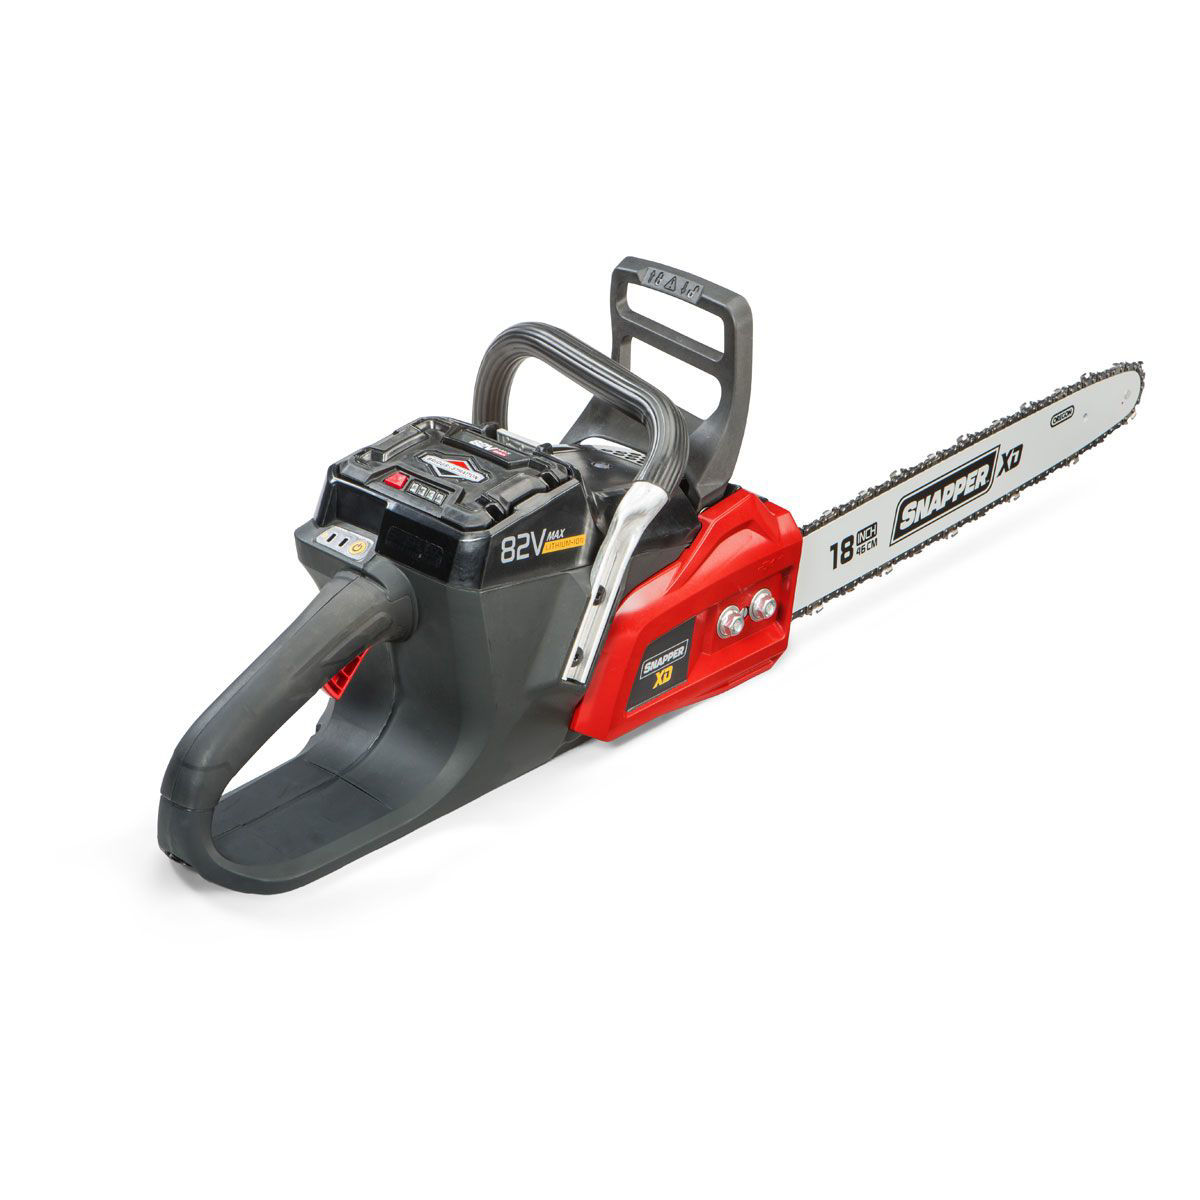 Picture of SNAPPER 82V CORDLESS CHAIN SAW